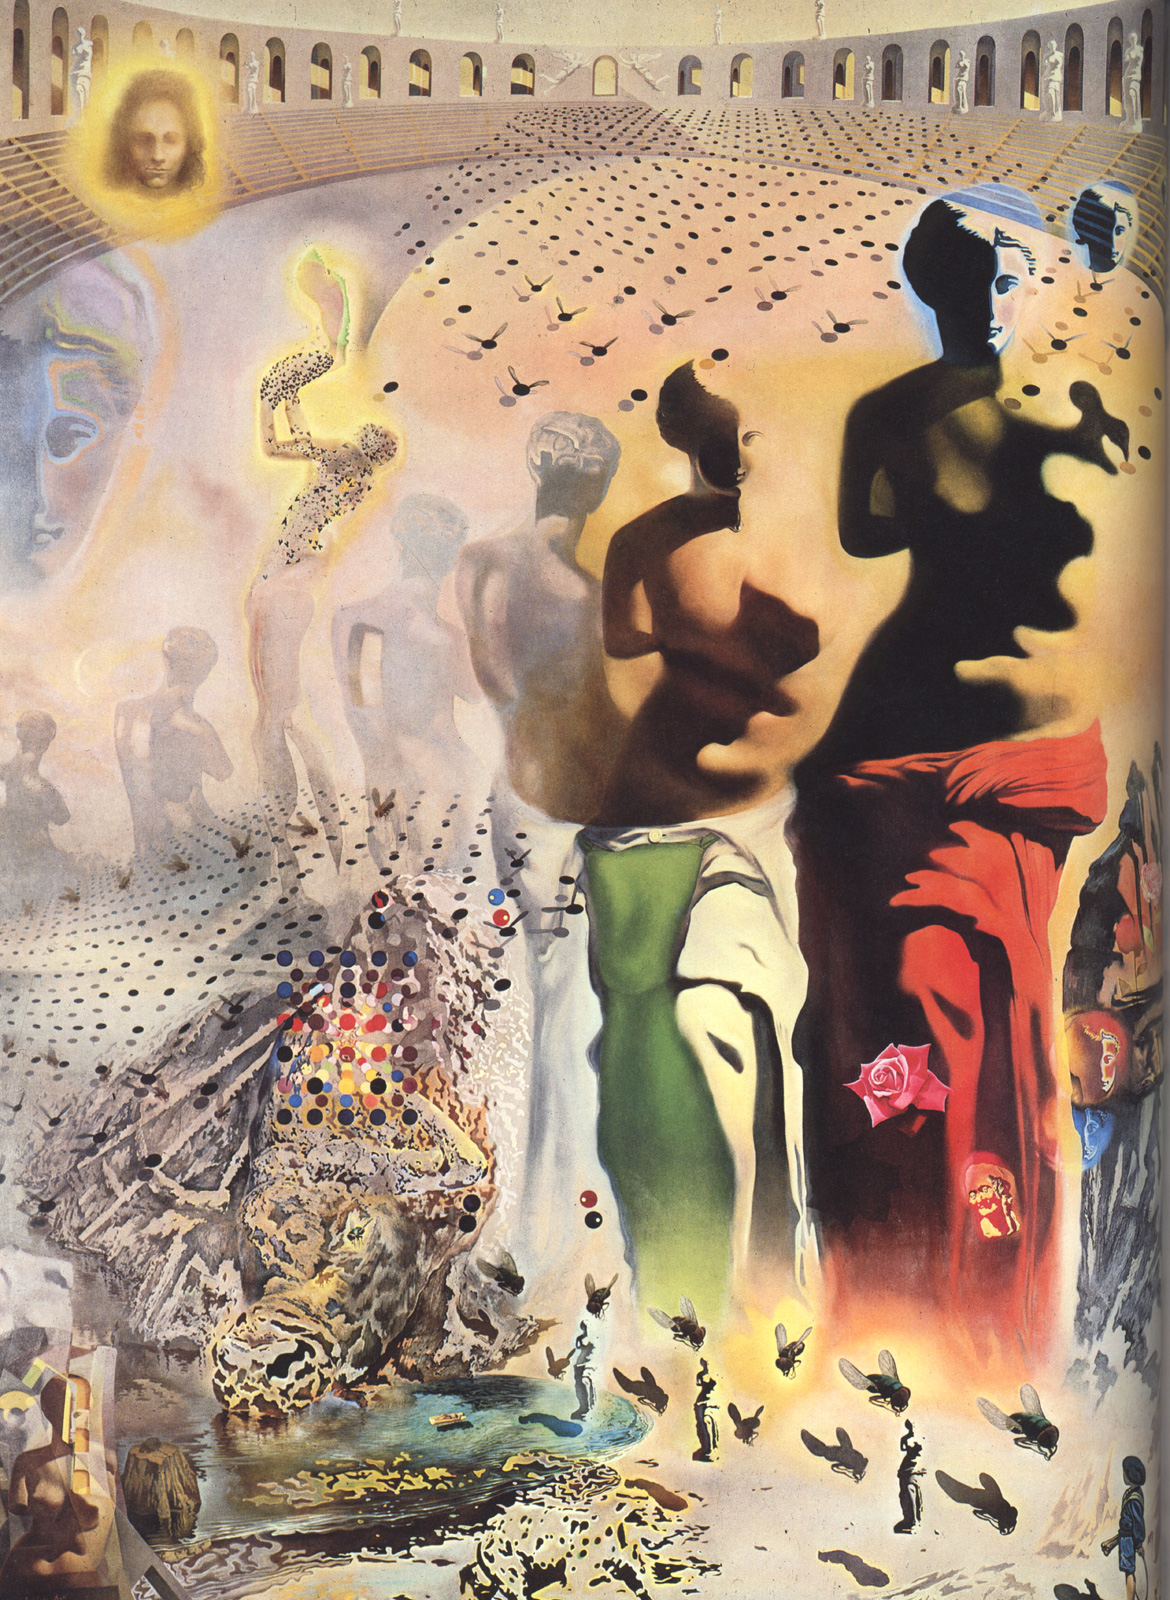 a visual analysis of the hallucinogenic toreador by salvador dali Salvador dali hallucinogenic toreador poster 11x17  de la mirella bruno visual acoustics & pattern pollinating visionist  salvador dali's crucifixion - analysis.